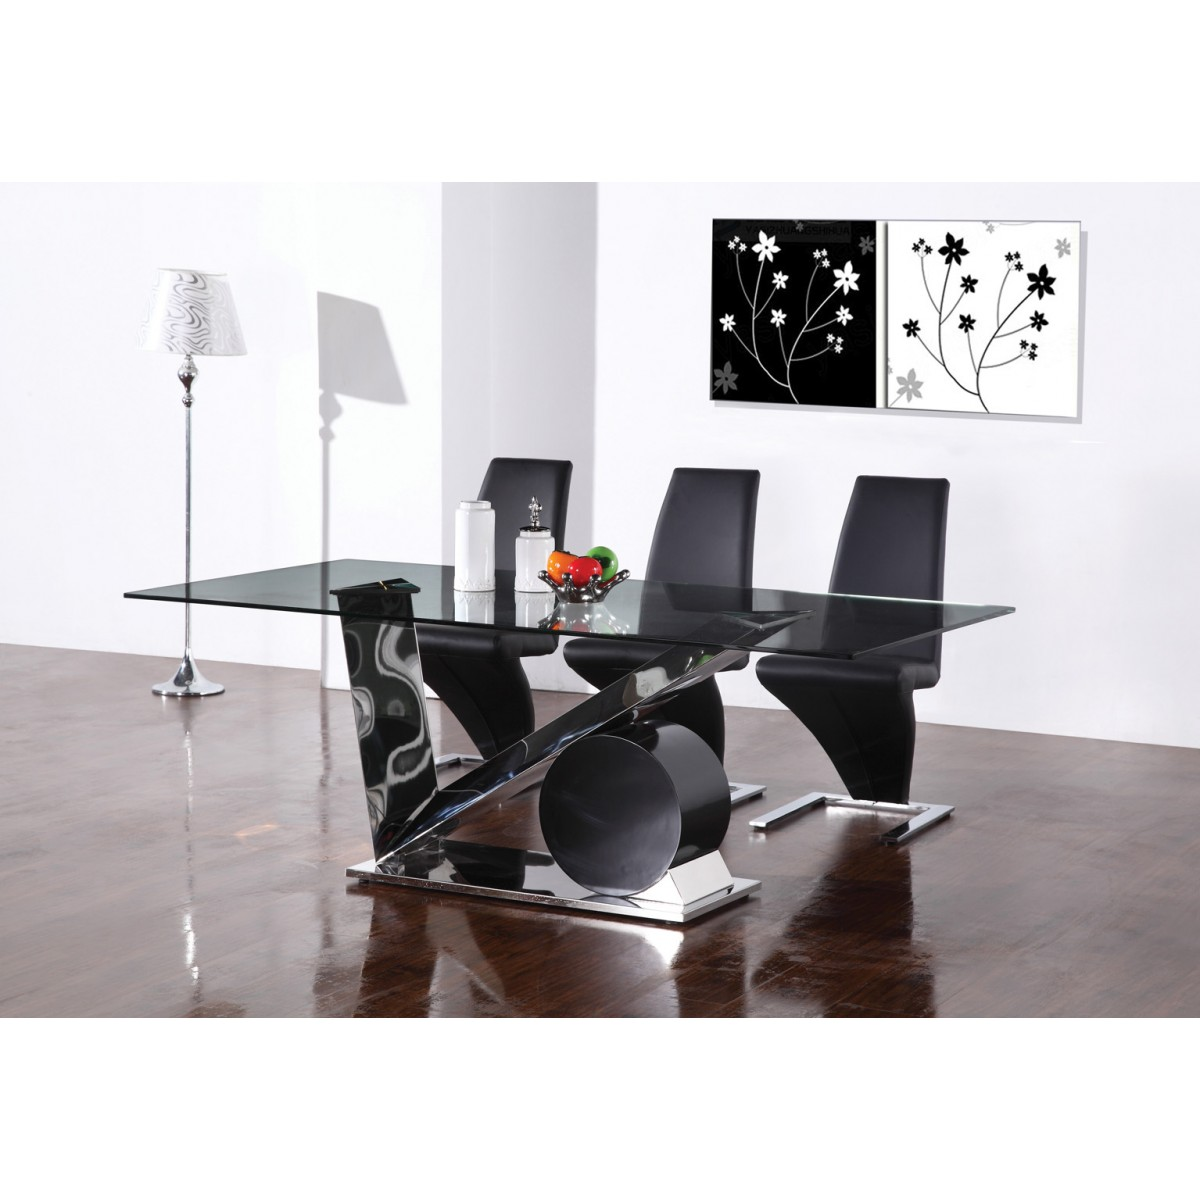 Formidable Set De Table Pour Table En Verre 4 Table Salle Manger Inox Verre Valdiz